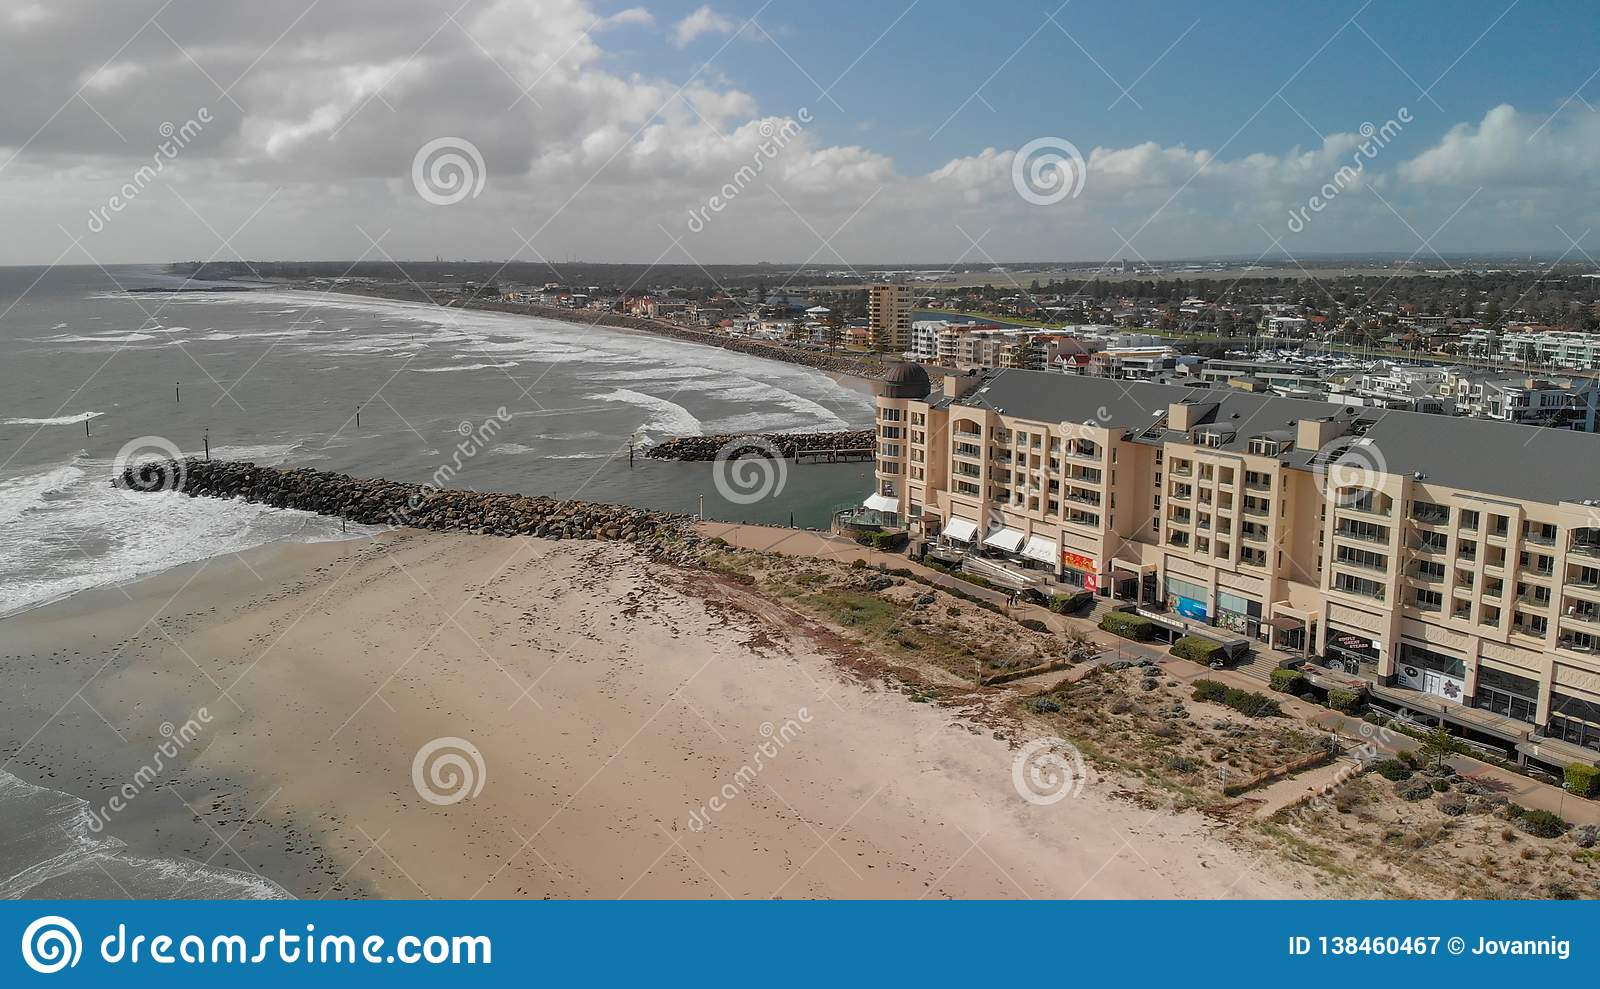 GLENELG, AUSTRALIA - SEPTEMBER 15, 2018: Aerial view of beautiful city skyline on a sunny day. Glenelg is a famous attraction near